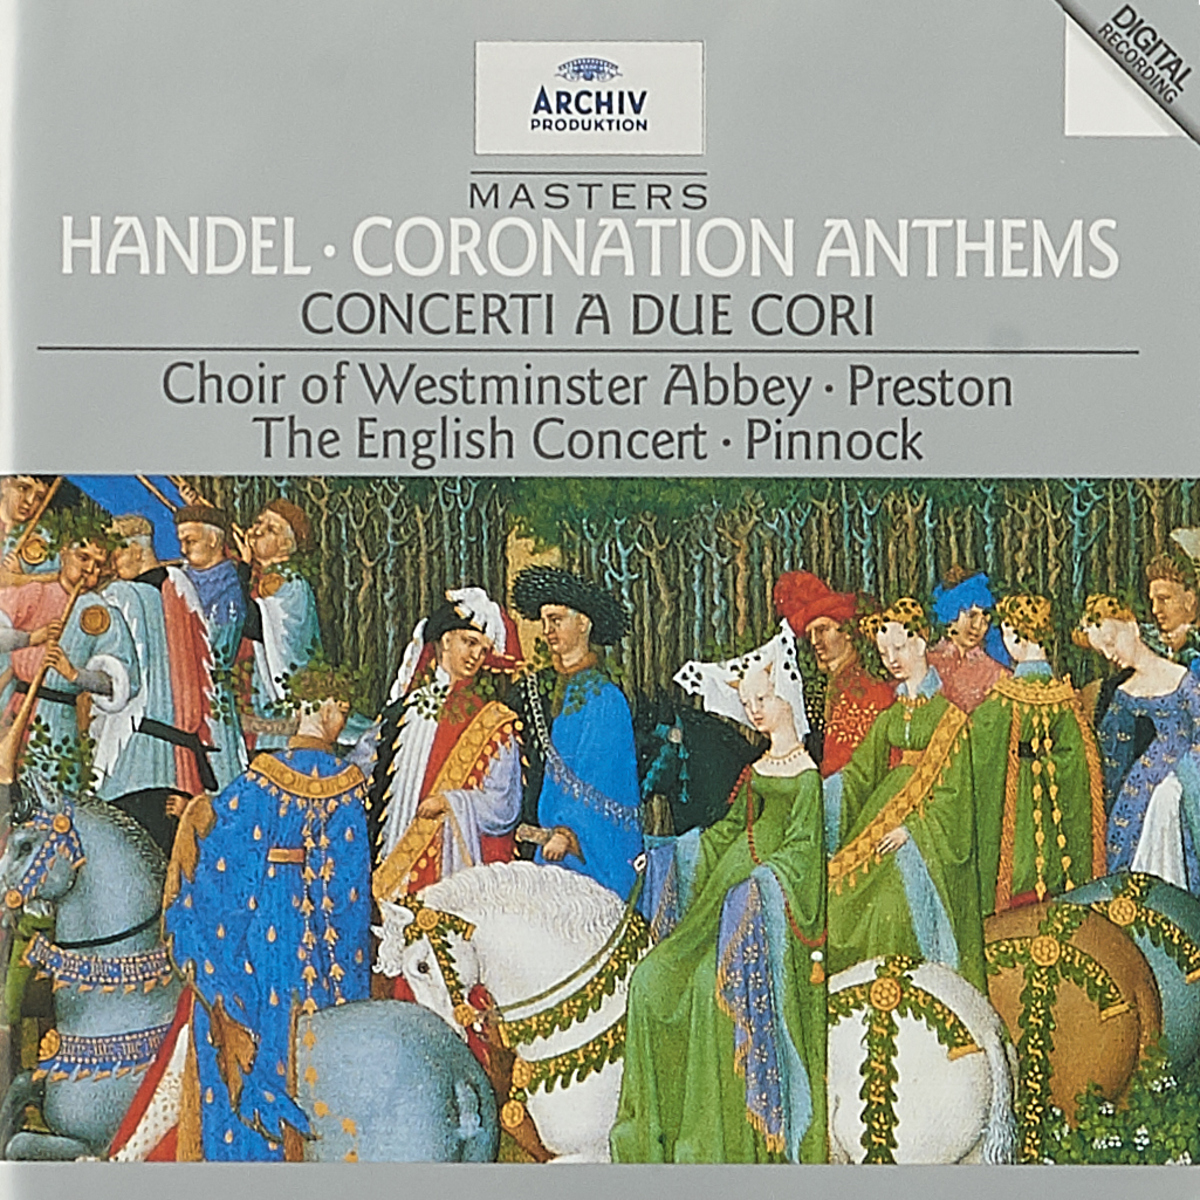 где купить The English Concert Orchestra,Westminster Abbey Choir,Тревор Пиннок,Саймон Престон Trevor Pinnock / Simon Preston. Handel: Coronation Anthems дешево